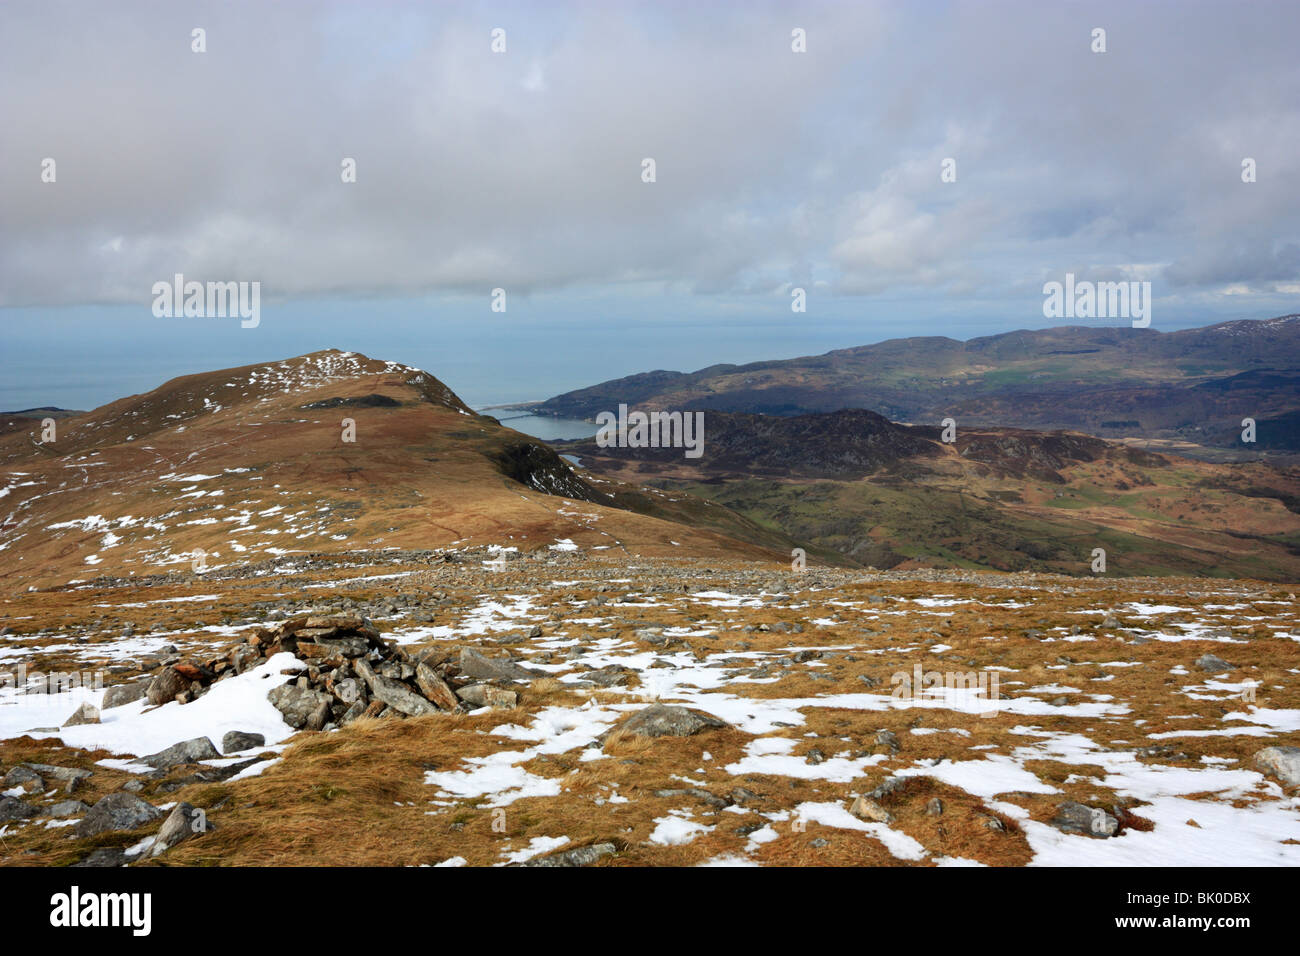 On the slopes of Cyfrwy on Cadair Idris, looking west beyond the peak of Tyrrau Mawr to the Mawddach estuary and - Stock Image